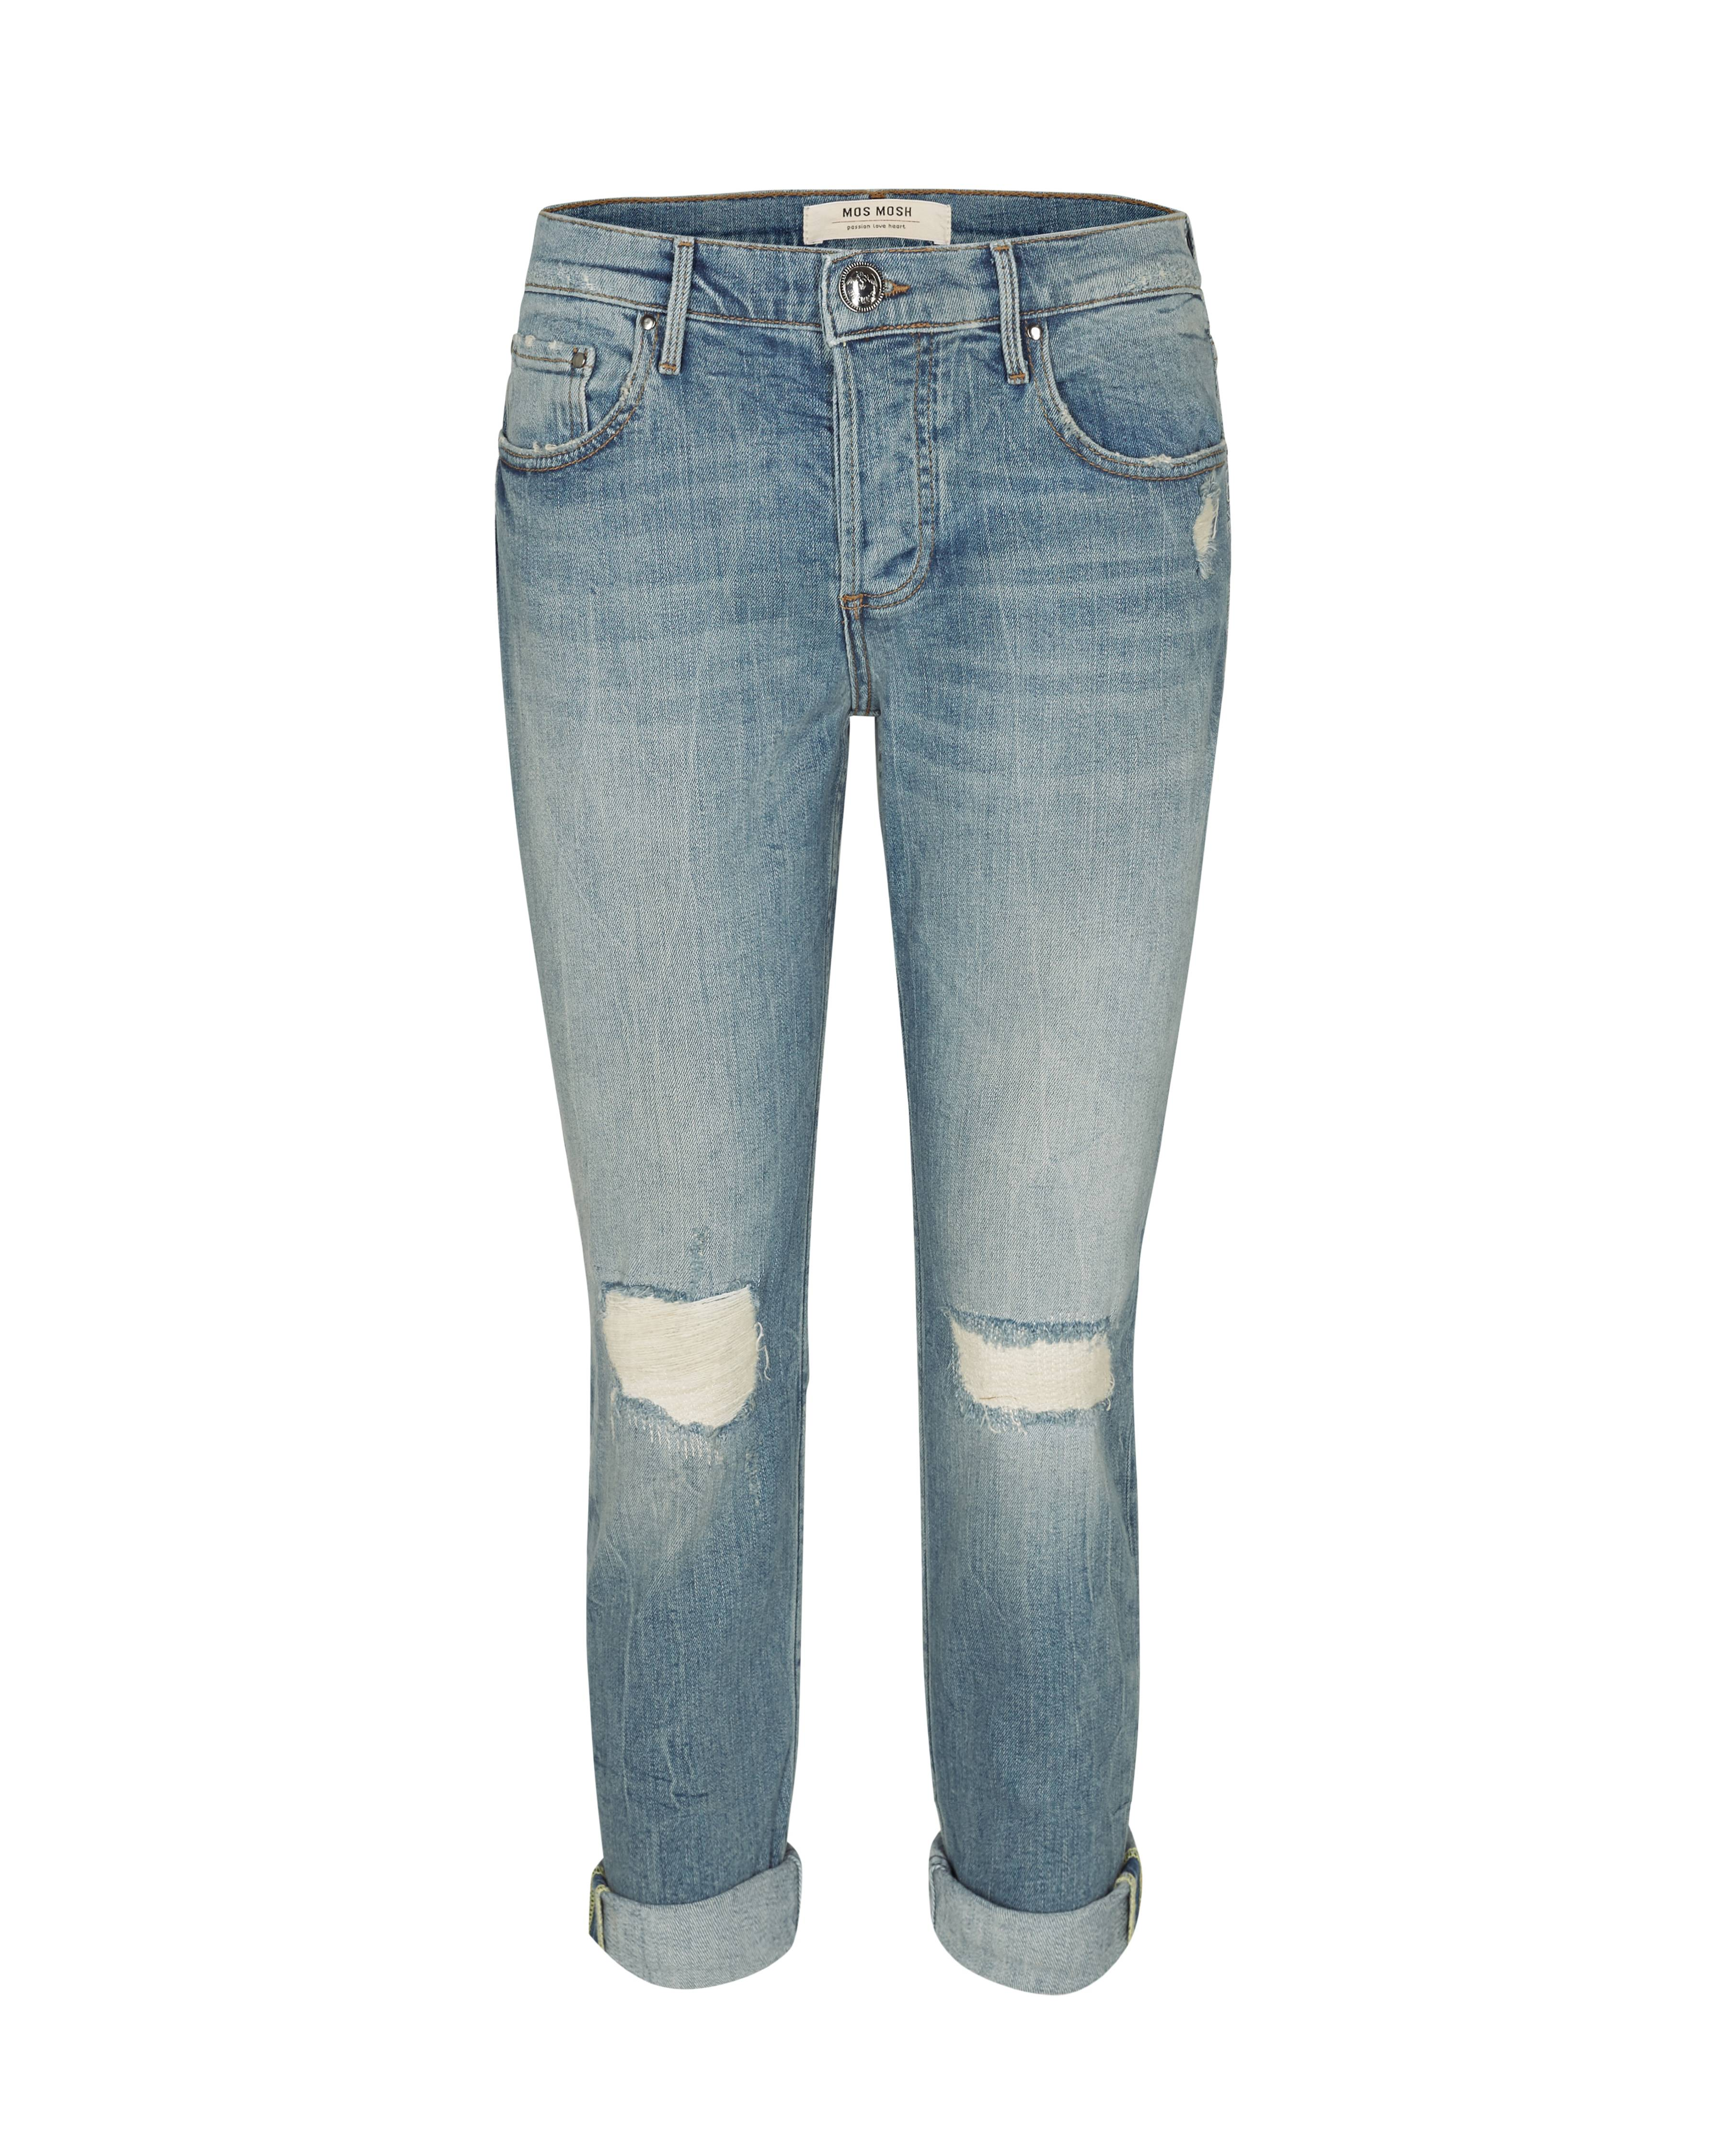 122870 - Ava Jeans - Pack Front-1